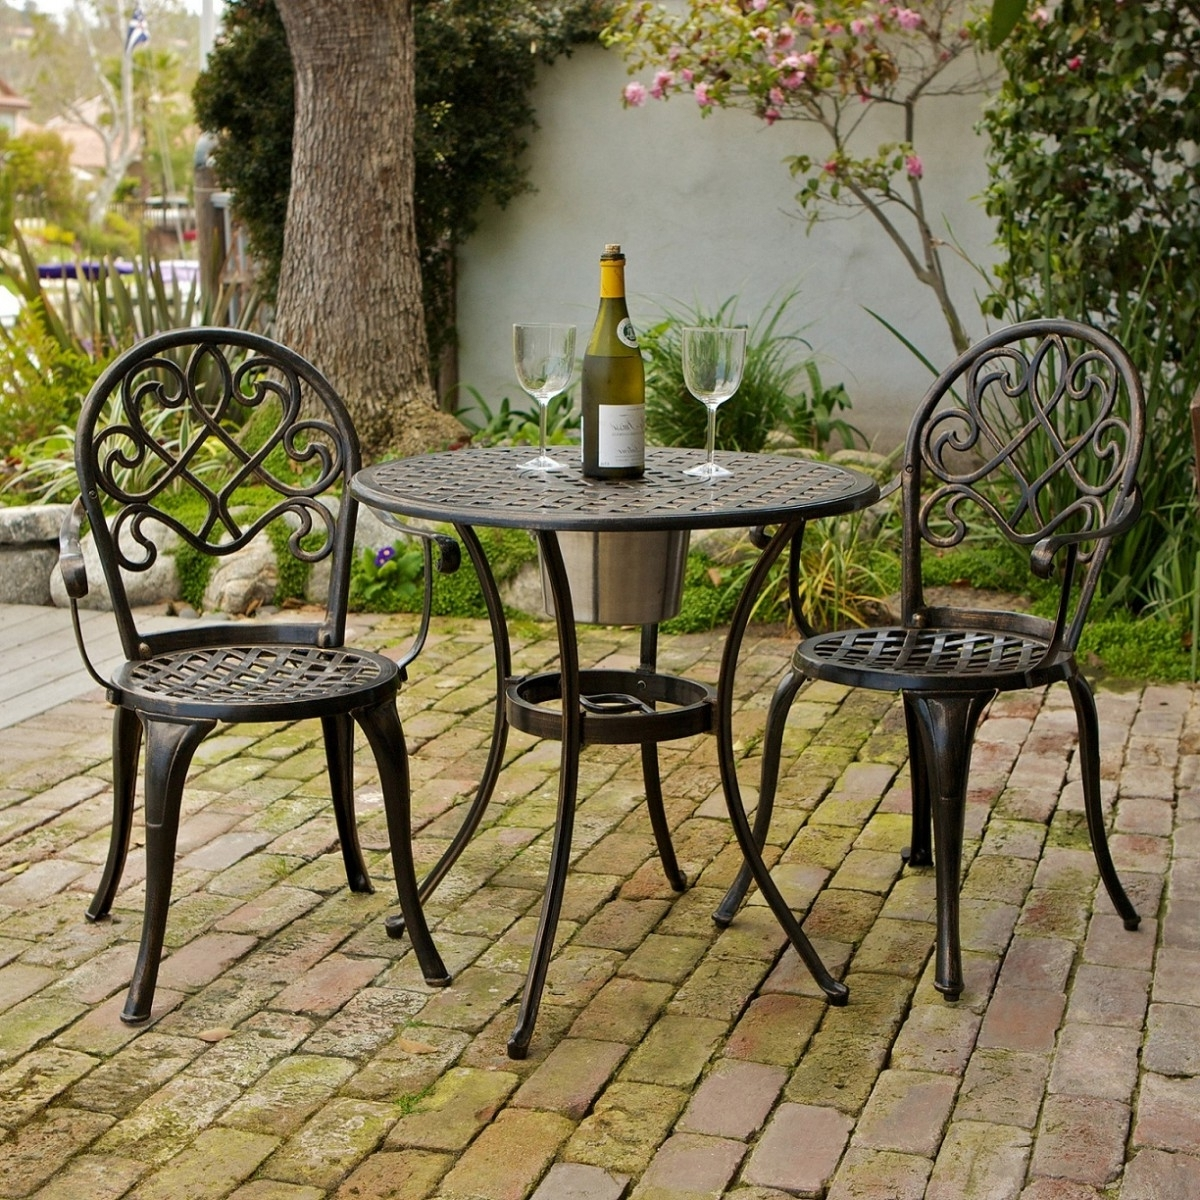 Cheap Patio Furniture Sets Under 200 Dollars, Back Yard Table – Coho In Well Known Patio Conversation Sets Under  (View 2 of 15)